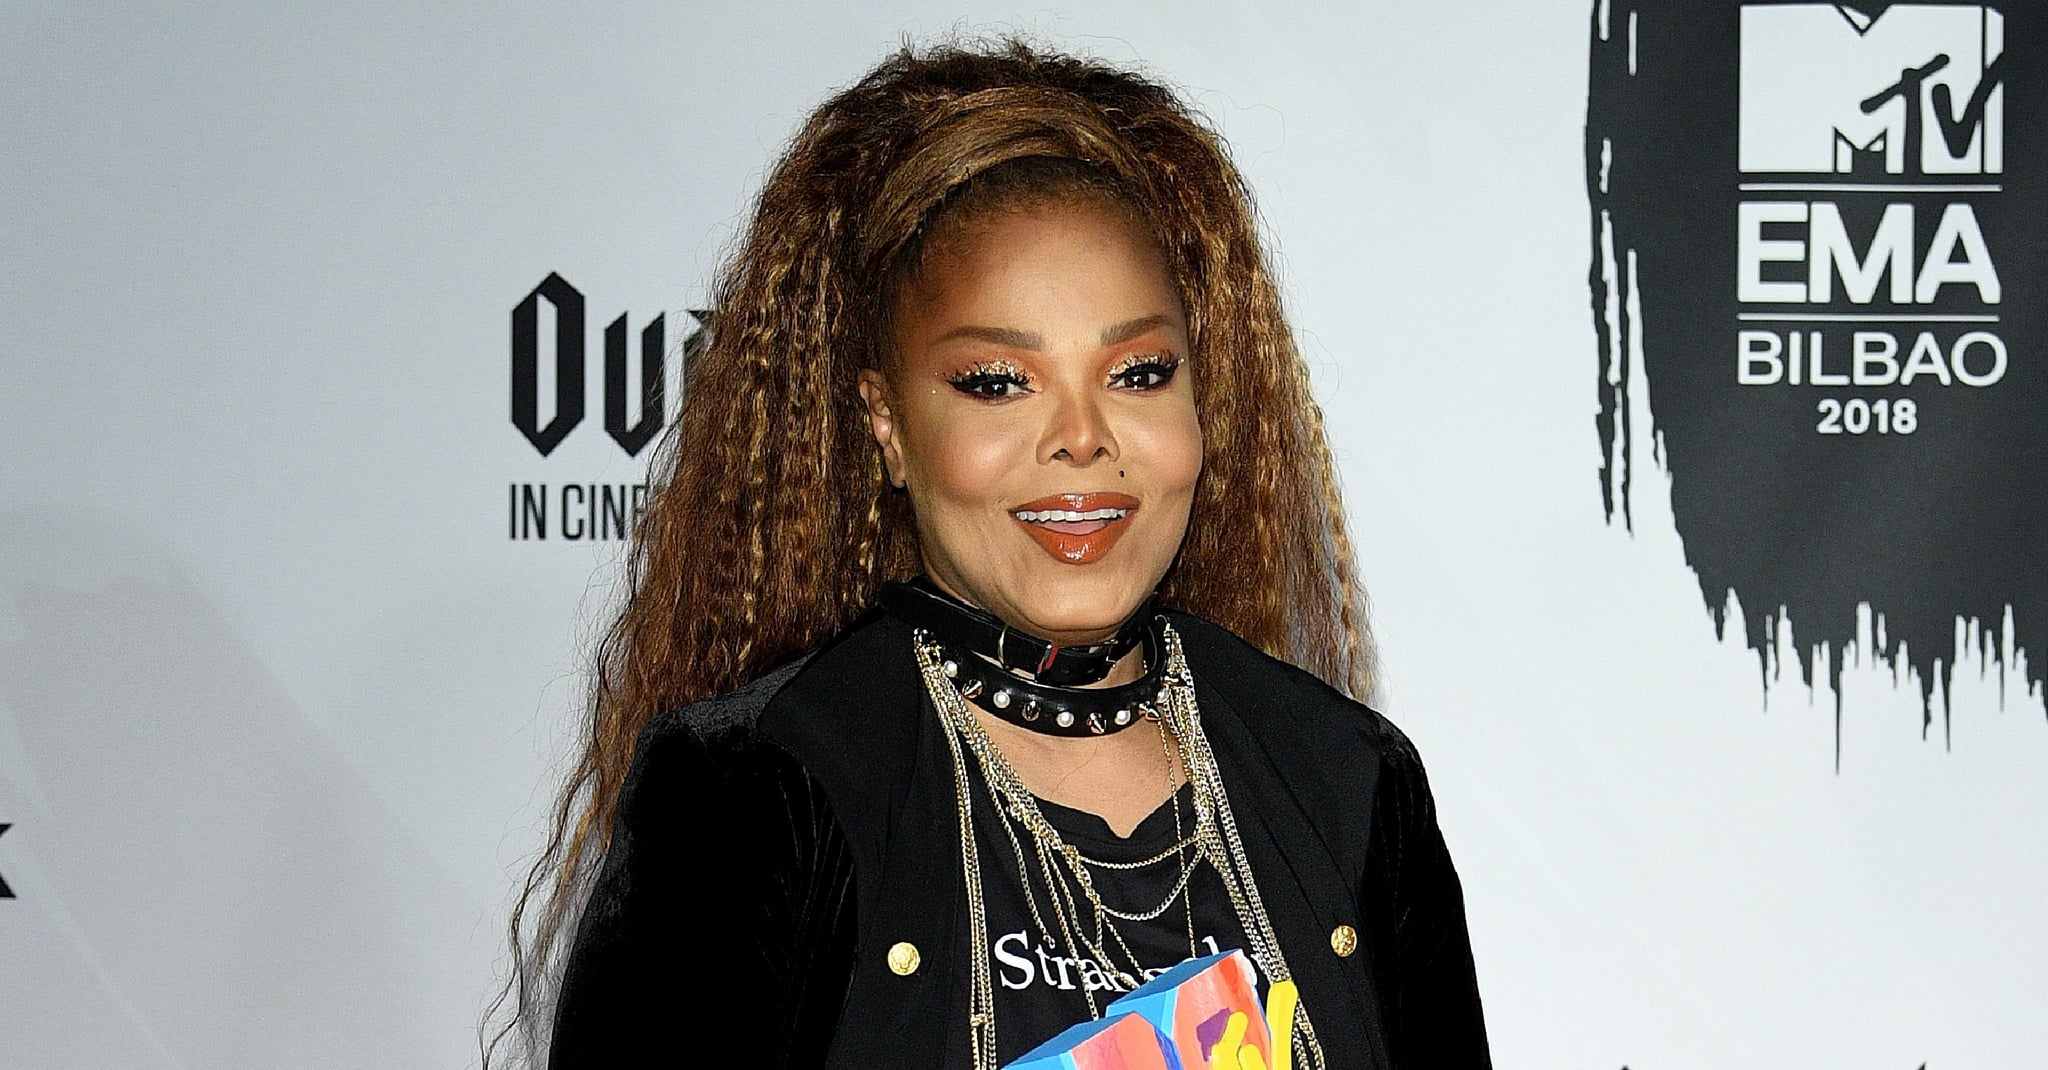 Janet Jackson Will Be Inducted Into the Rock and Roll Hall of Fame in 2019